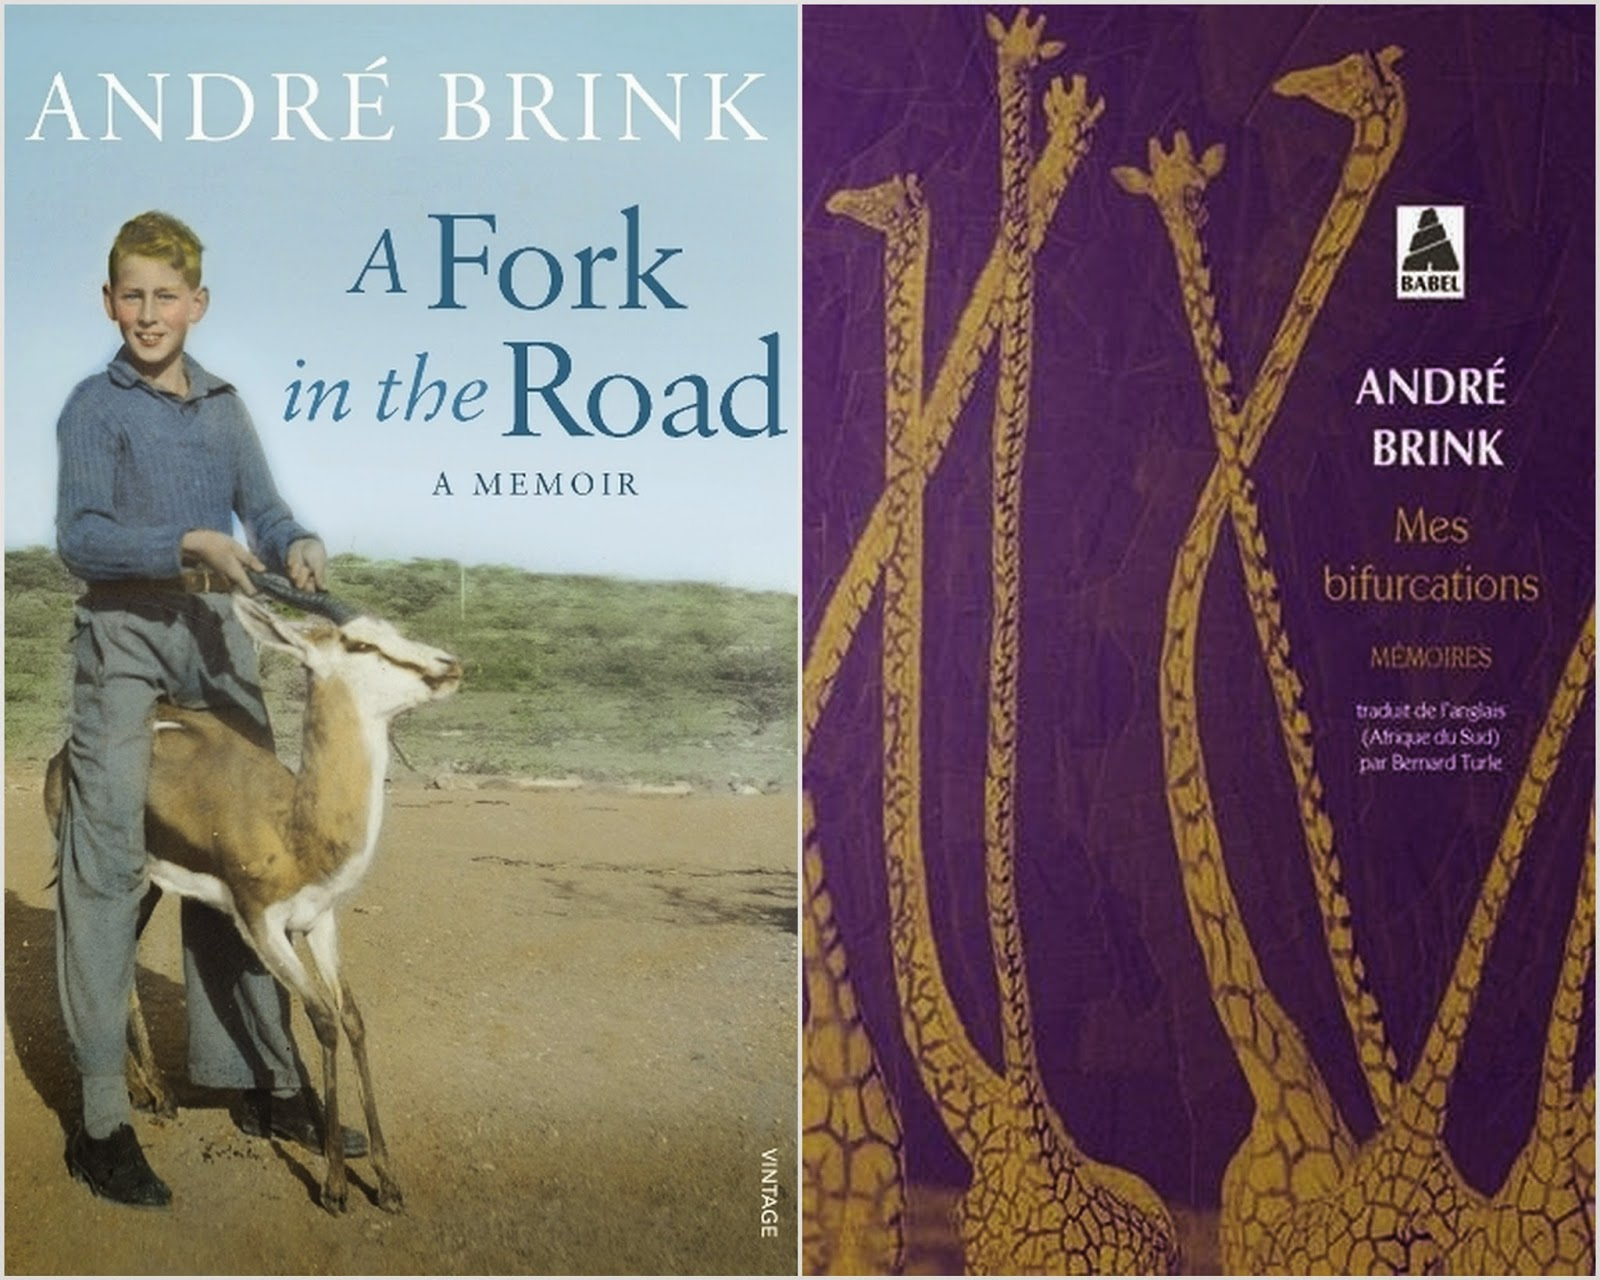 A Fork in the Road Mes bifurcations André Brink